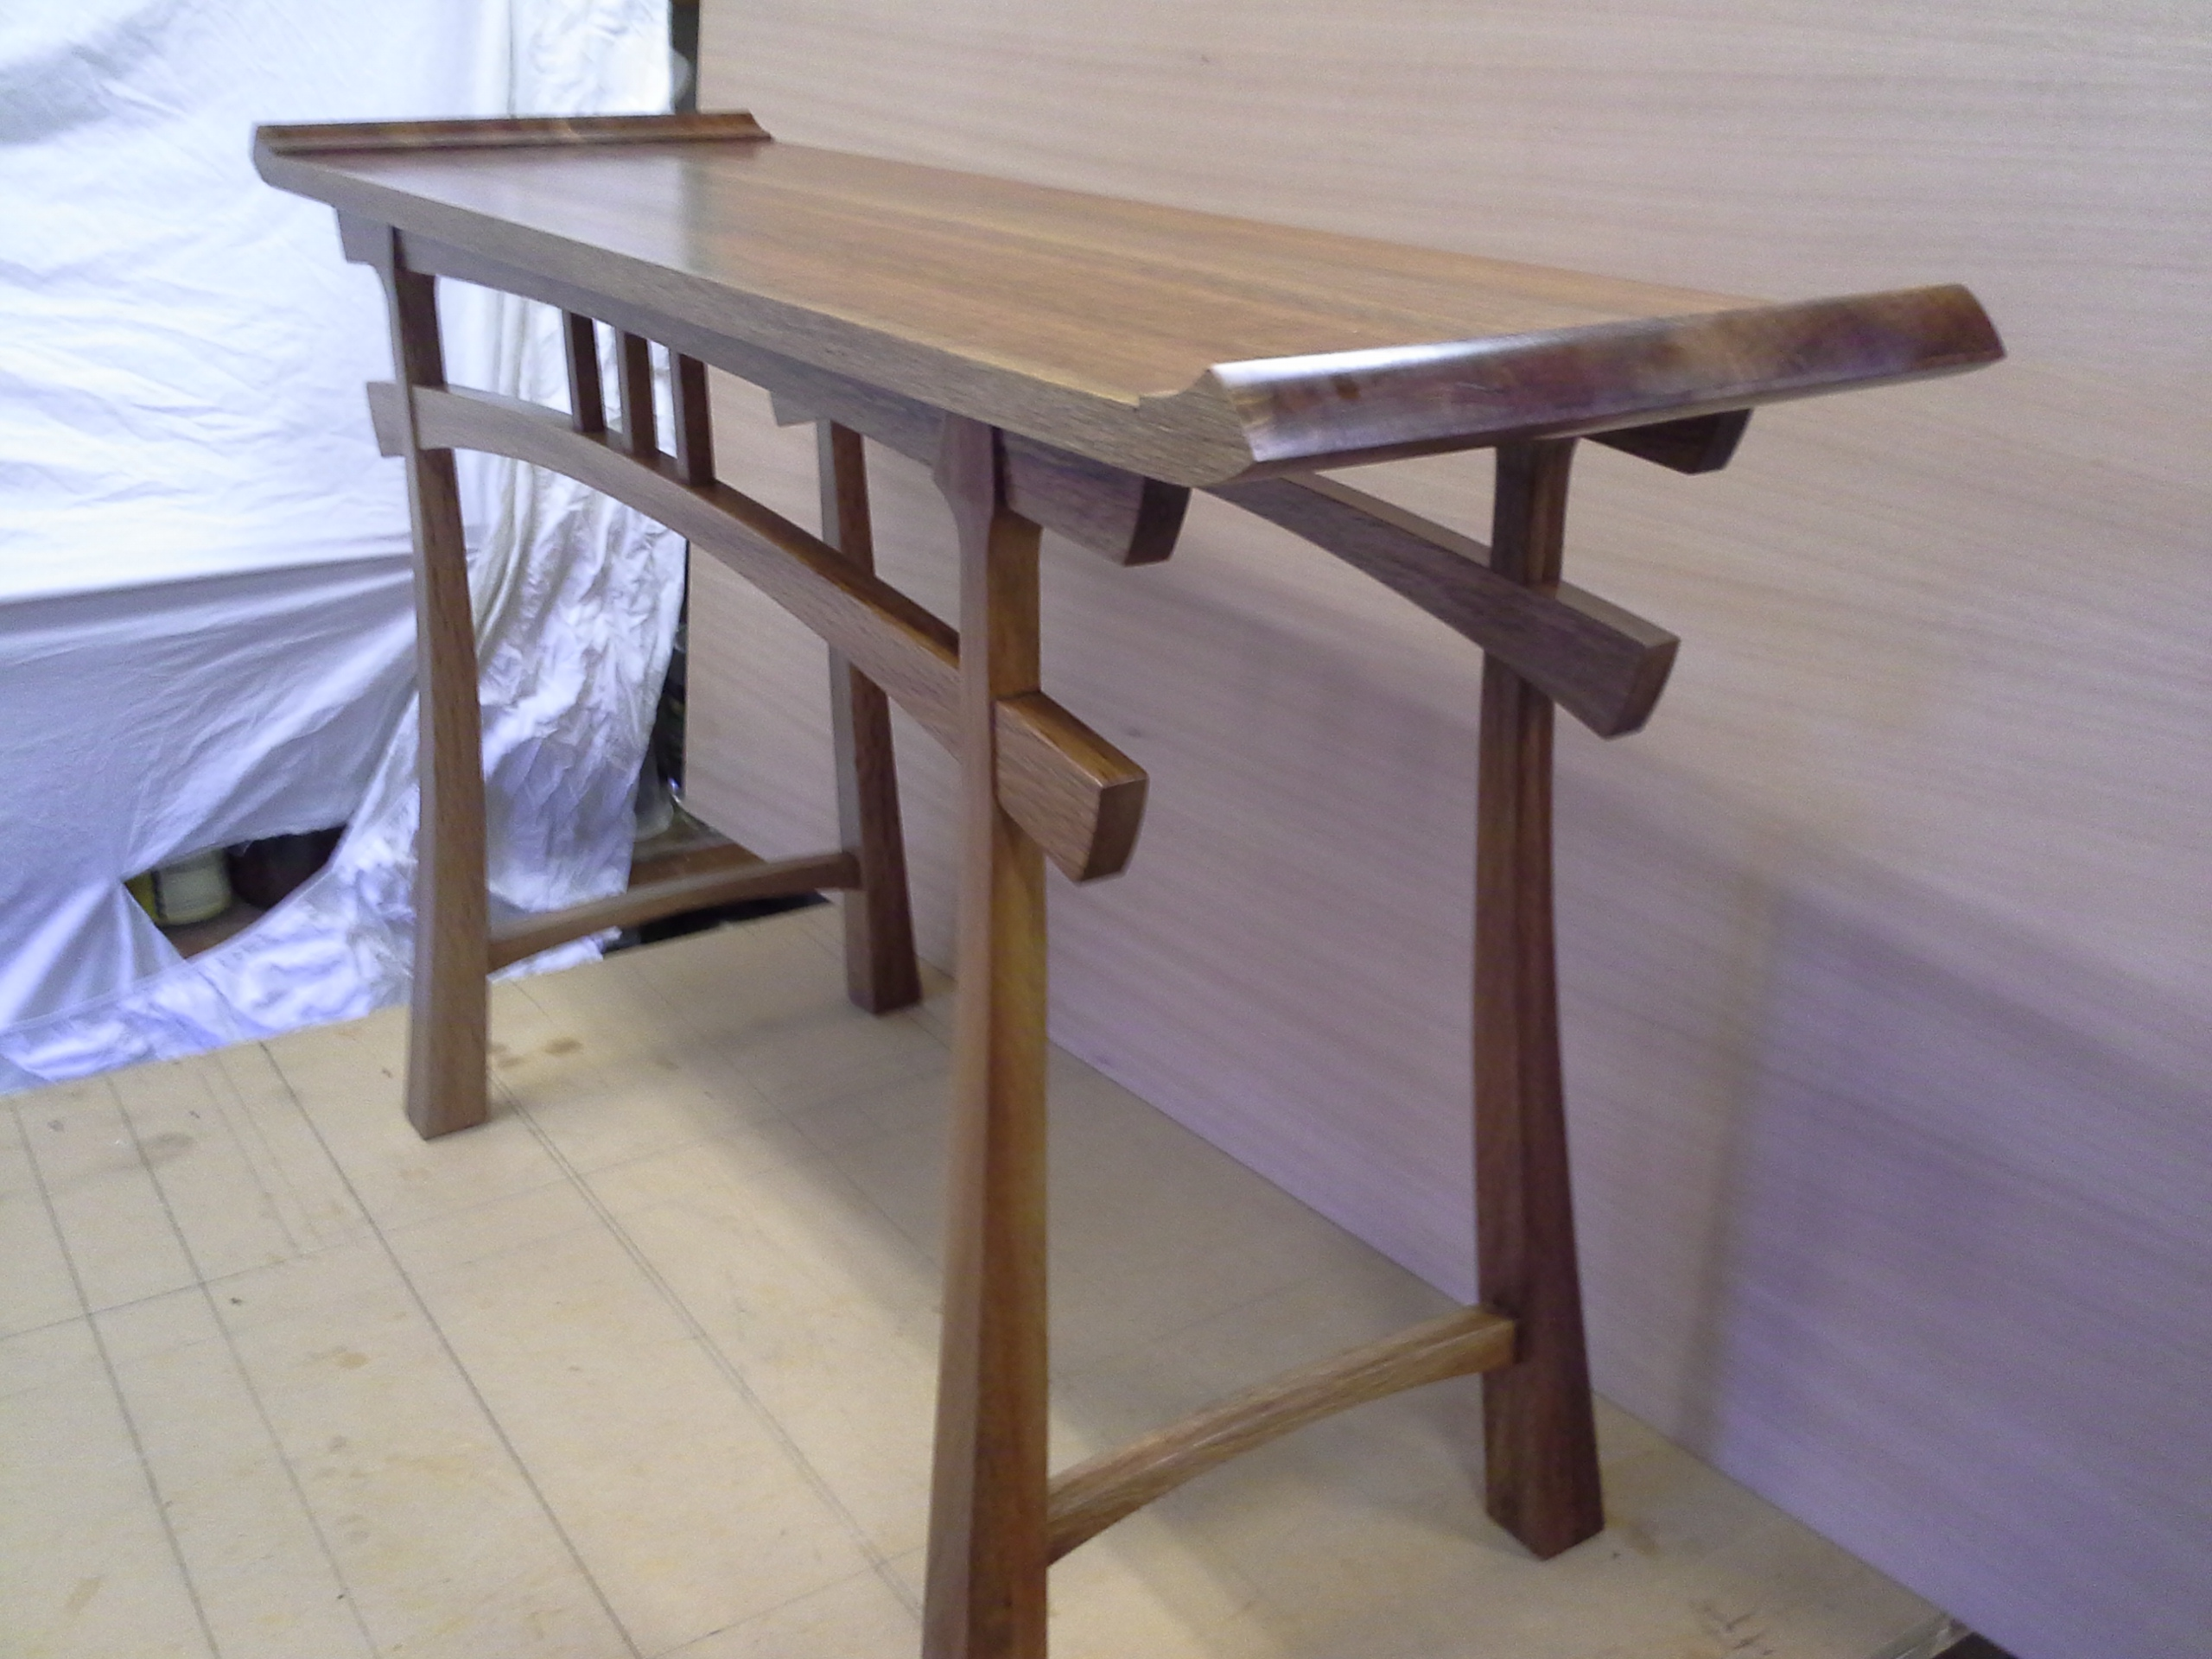 High Quality I Seem To Be Becoming More Obsessed With Japanese Style And Philosophy As  Evidenced By This Latest Table.I Have Made One Of These Previously And Got  Such A ...